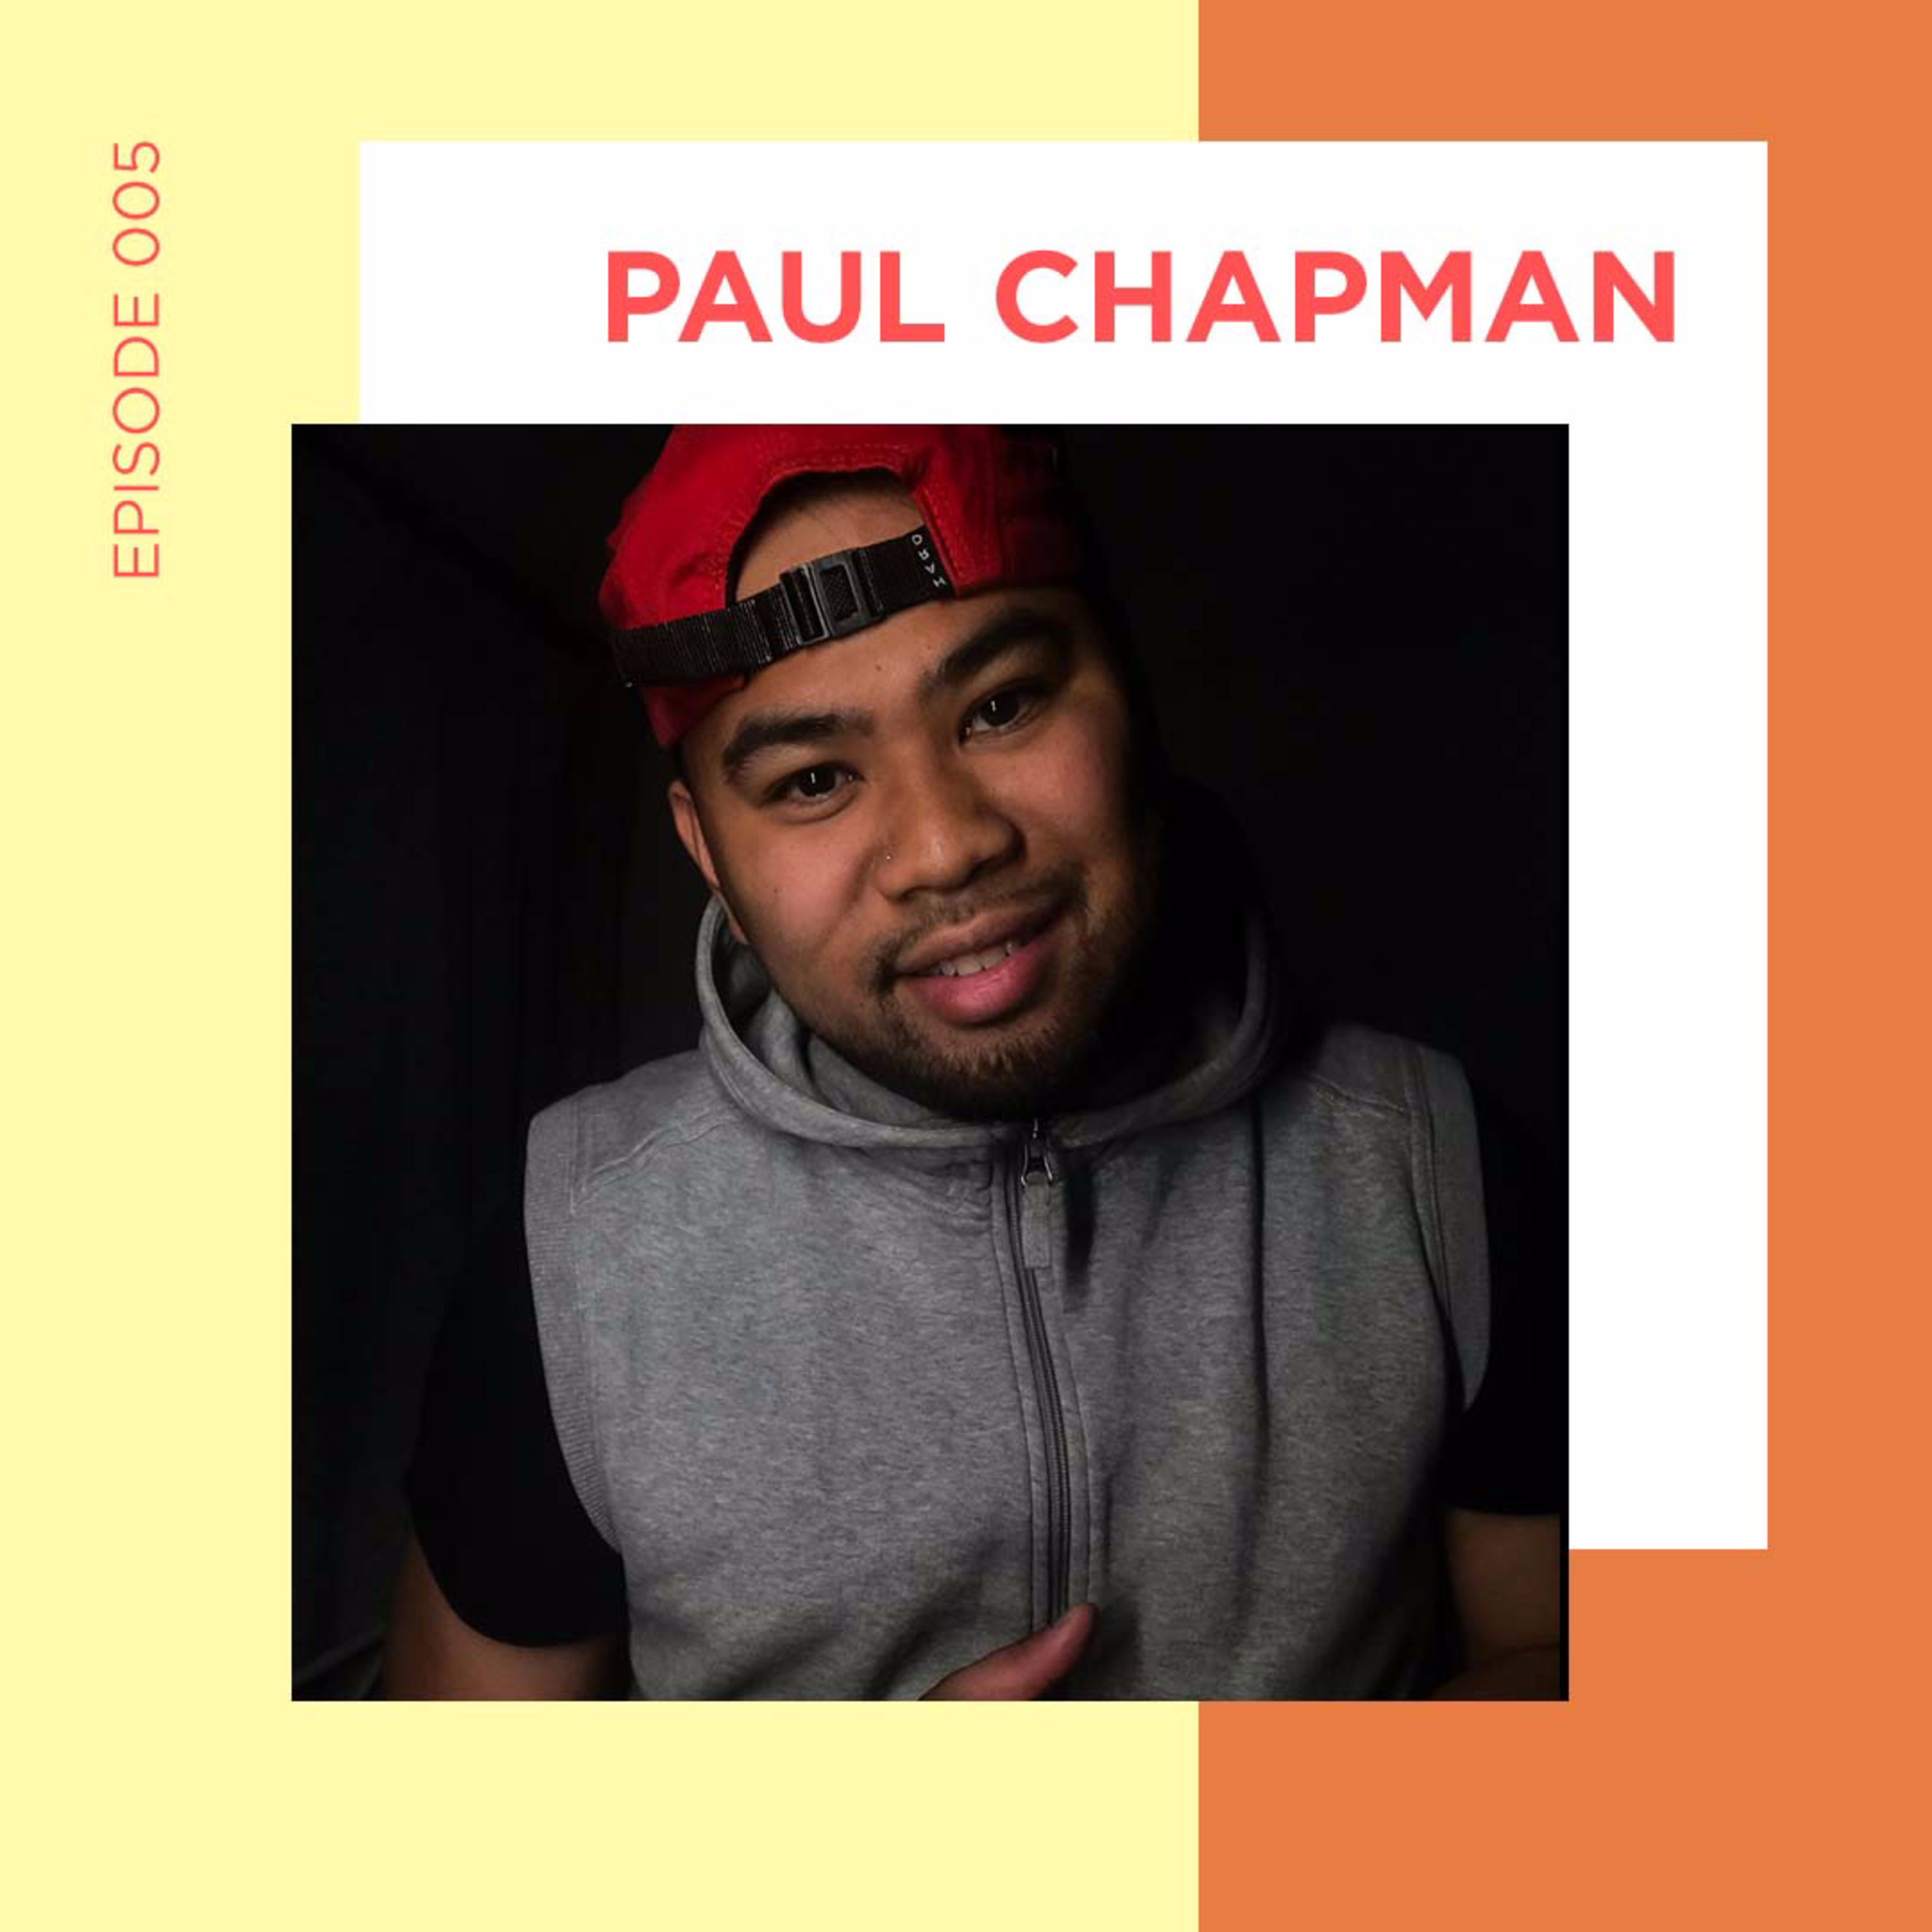 EP 5 - How I got into Dancing & Filming with Paul Chapman